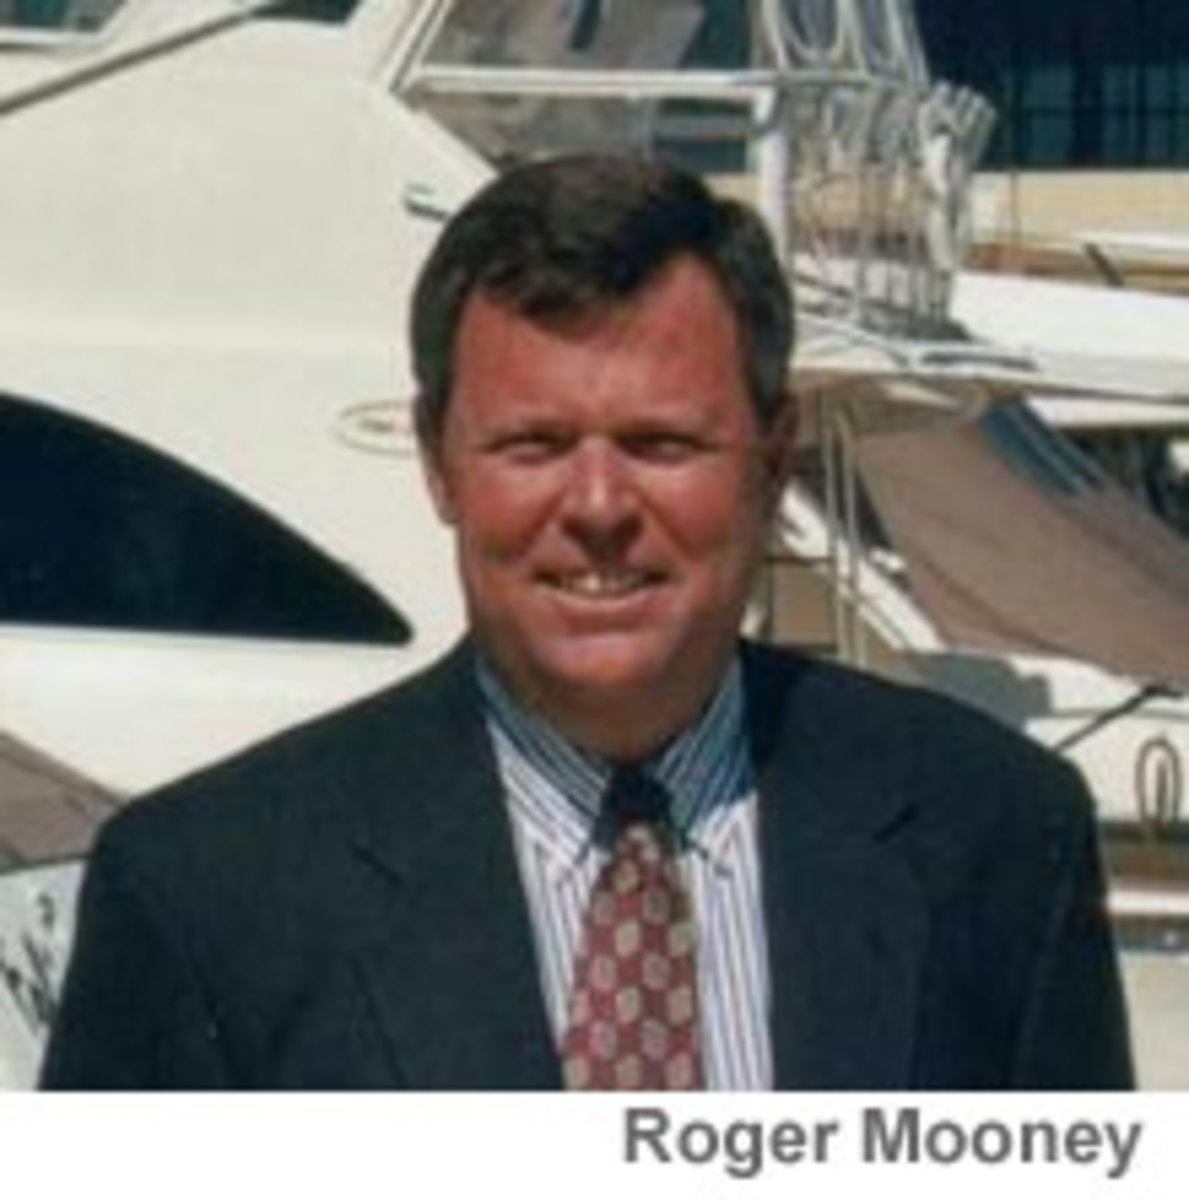 Roger Mooney of Jarrett Bay Yacht Sales